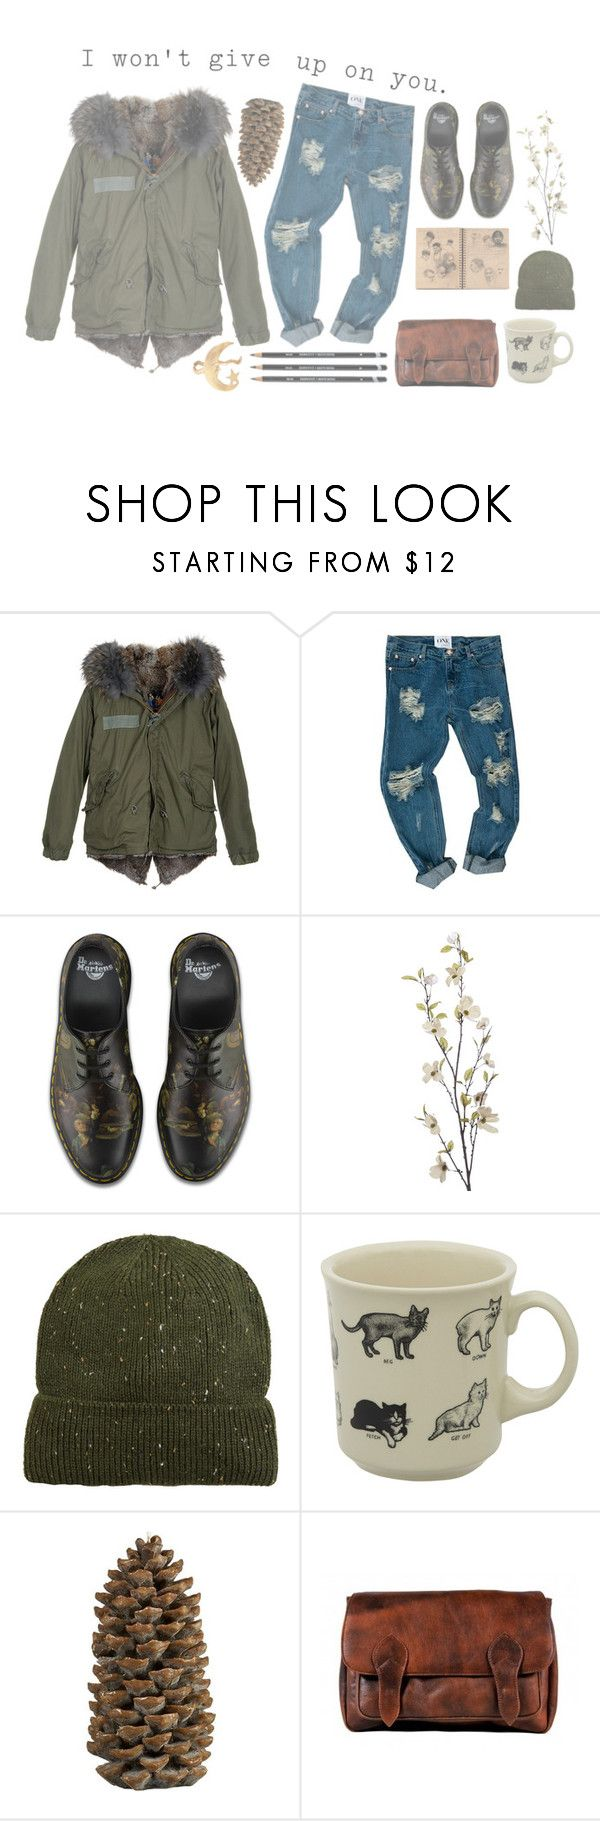 """""""10.10.16"""" by theboy-who-could-fly ❤ liked on Polyvore featuring Mr & Mrs Italy, OneTeaspoon, Dr. Martens, Pier 1 Imports, MANGO, Fishs Eddy, Crate and Barrel, Bohemia and Alkemie"""